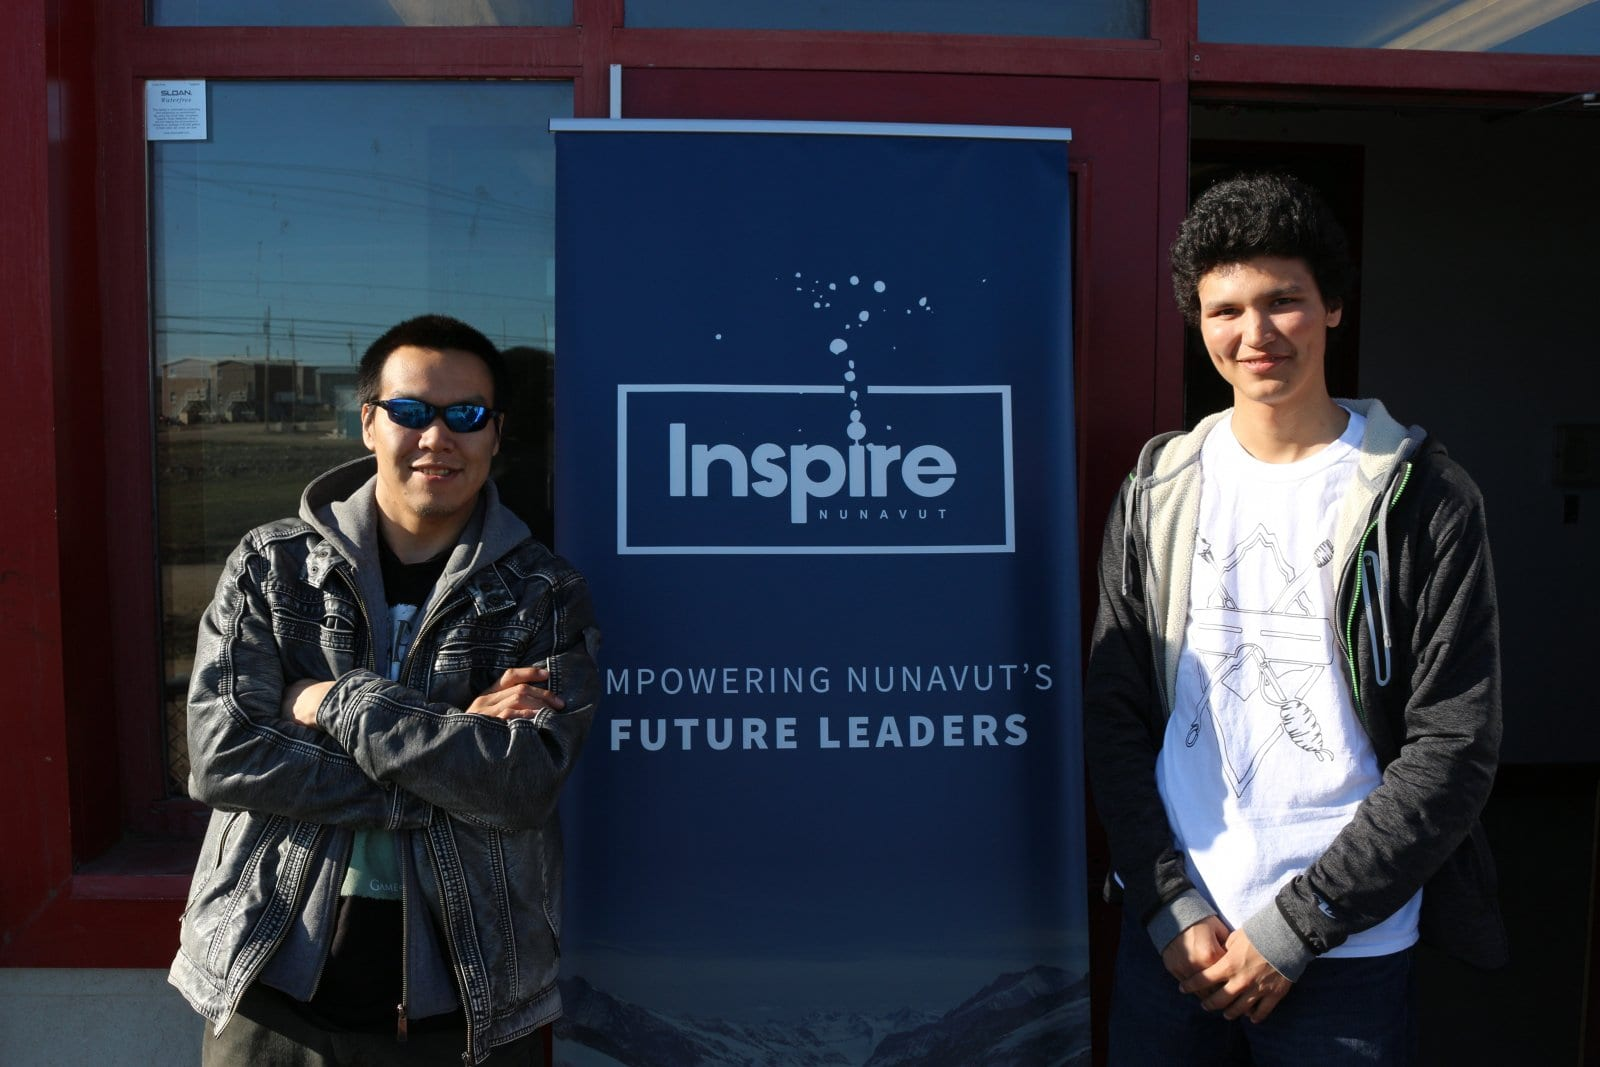 Two young men stand beside Inspire Nunavut sign